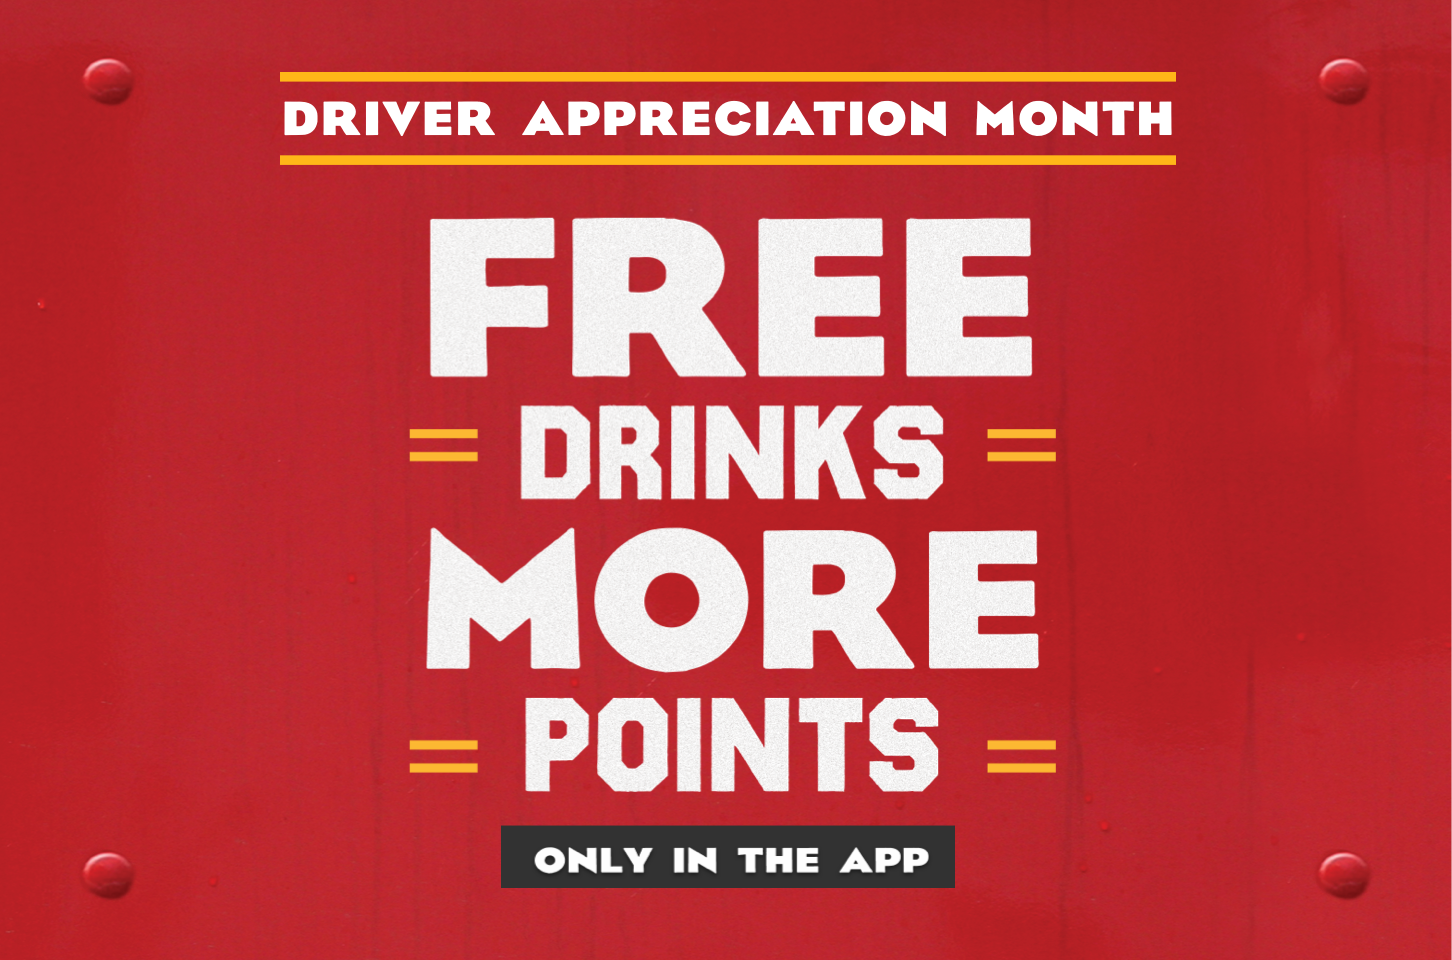 Free drinks and more points exclusively for pro drivers in the myRewards Plus™ app all September for Driver Appreciation month, available to redeem at more than 750 Pilot Flying J Travel Centers.